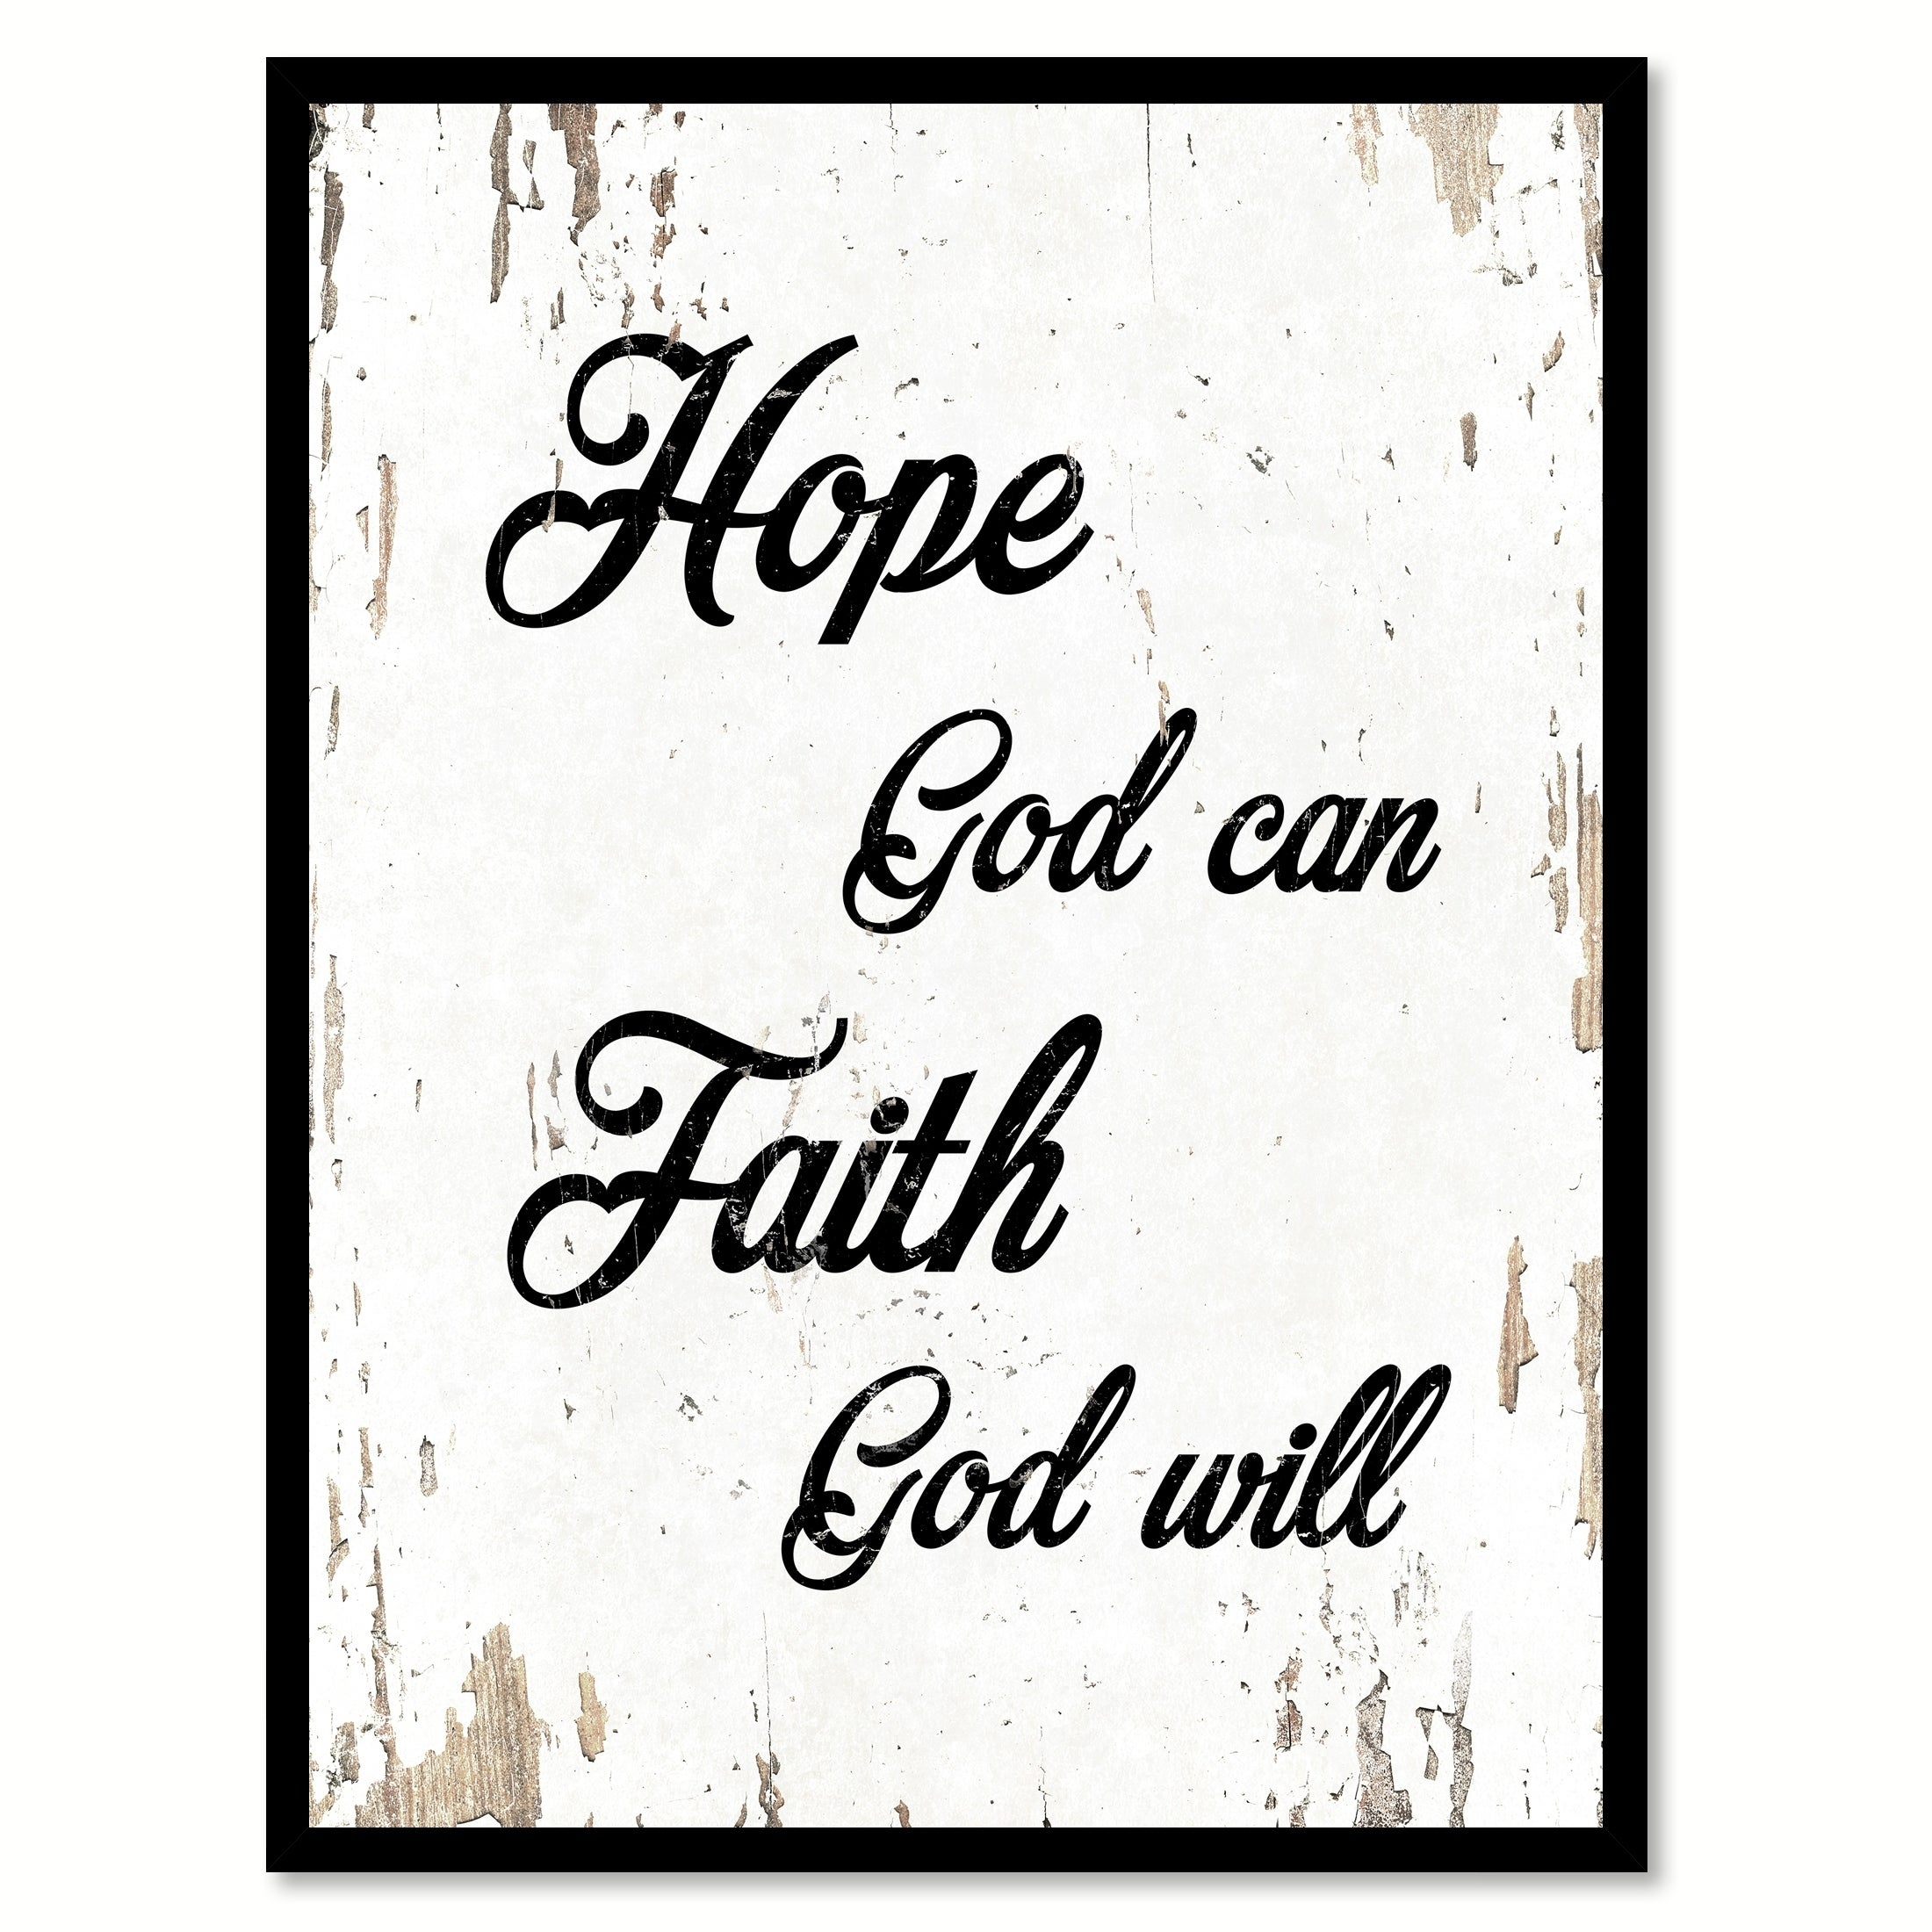 Hope god can faith god will quote saying canvas print picture hope god can faith god will quote saying canvas print picture frame home decor wall art free shipping on orders over 45 overstock 23716991 jeuxipadfo Gallery